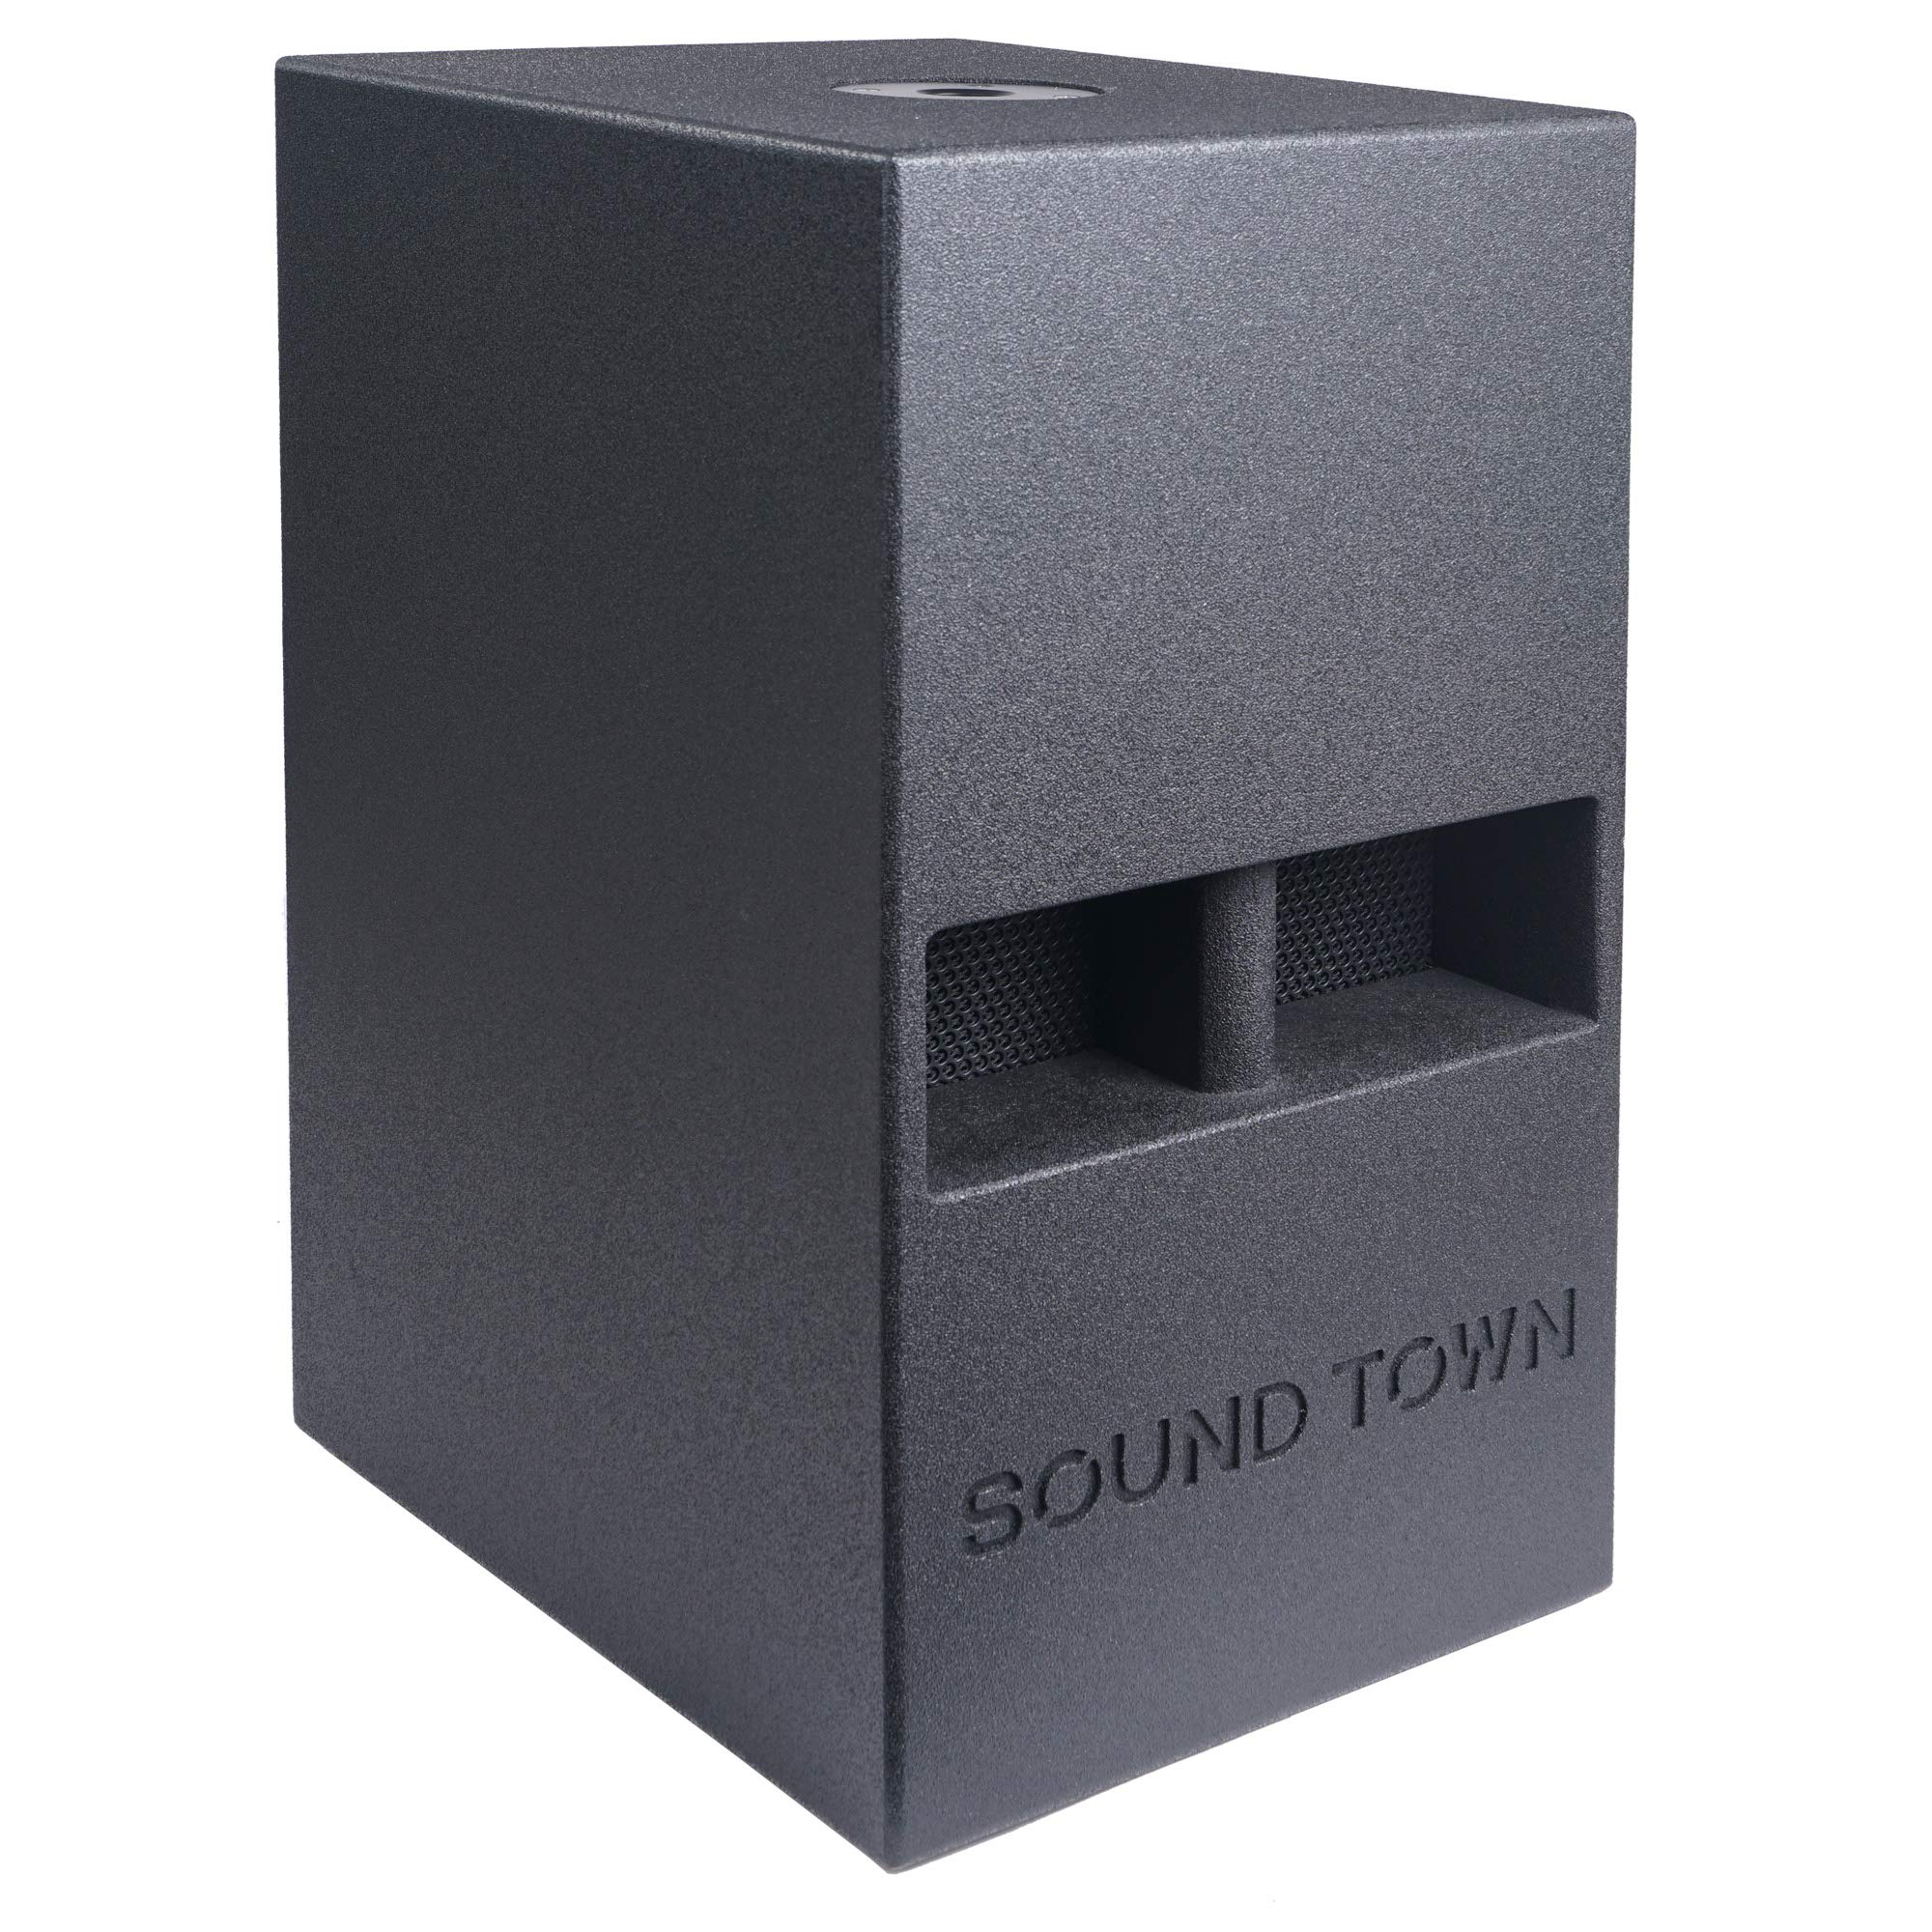 Sound Town CARME Series 12'' 800W Powered PA/DJ Subwoofer with Folded Horn Design, Black (CARME-112SPW) by Sound Town